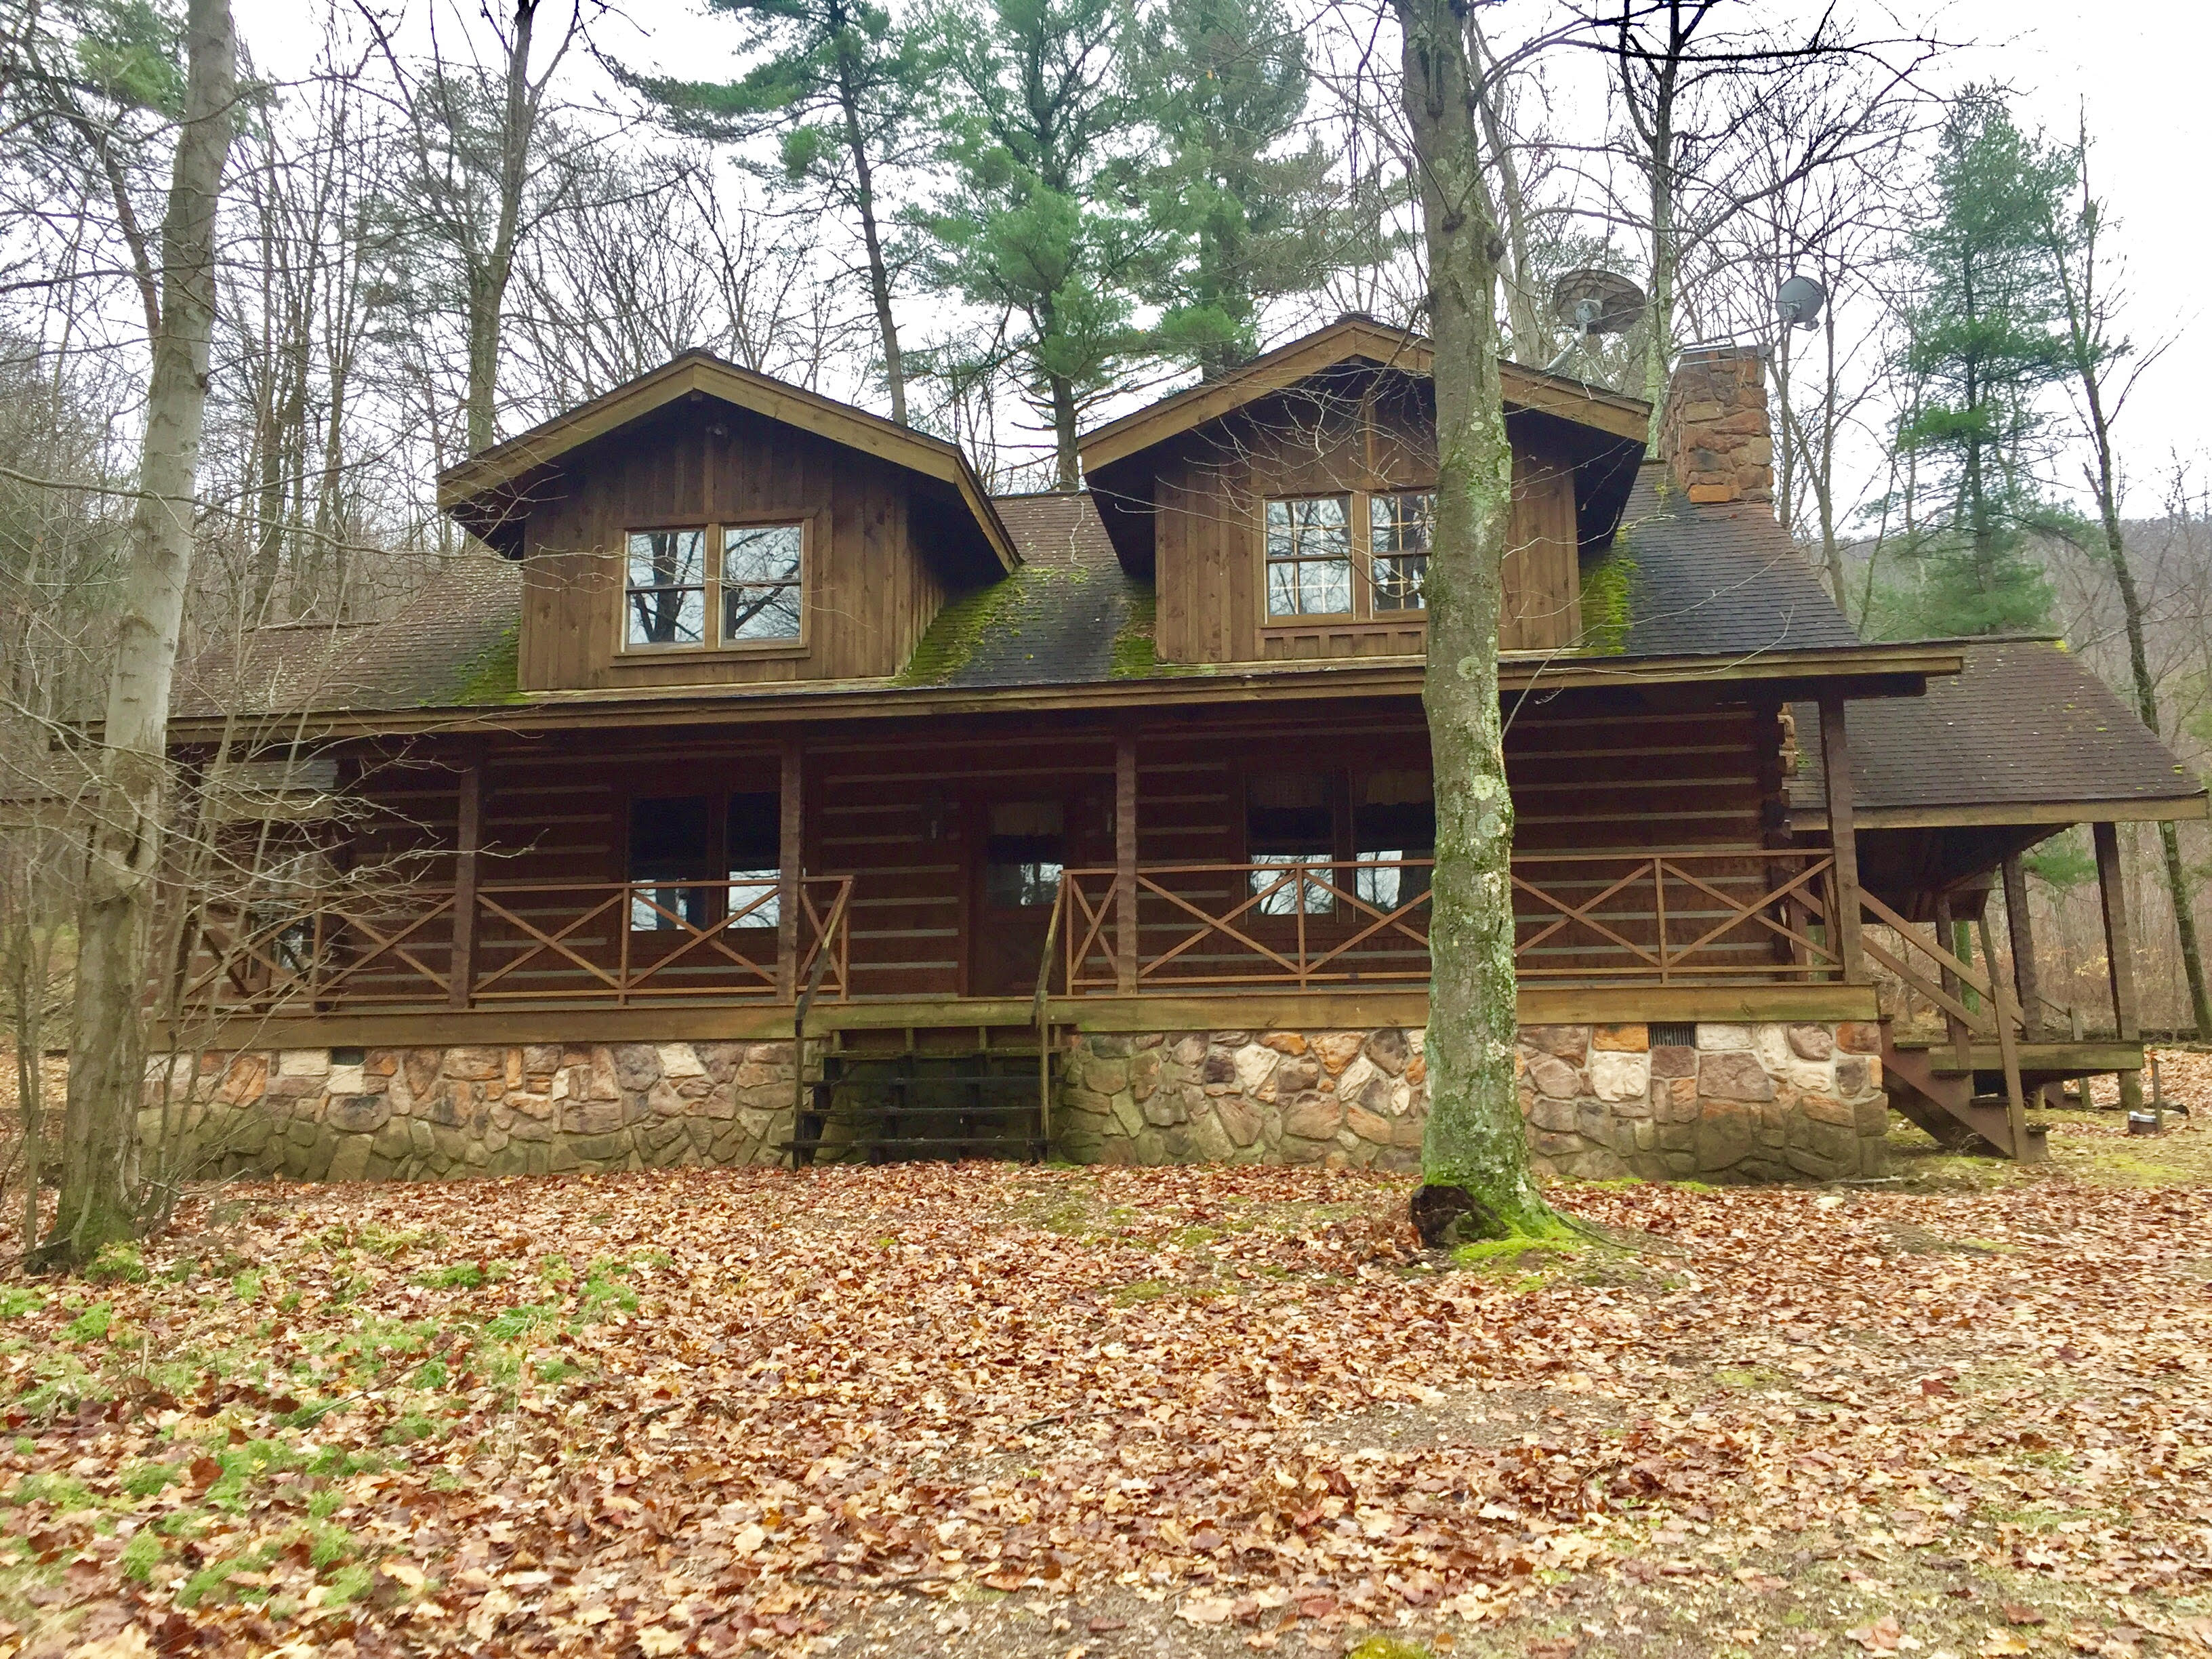 348 Acres Land, Log Cabin, Mifflinville, PA